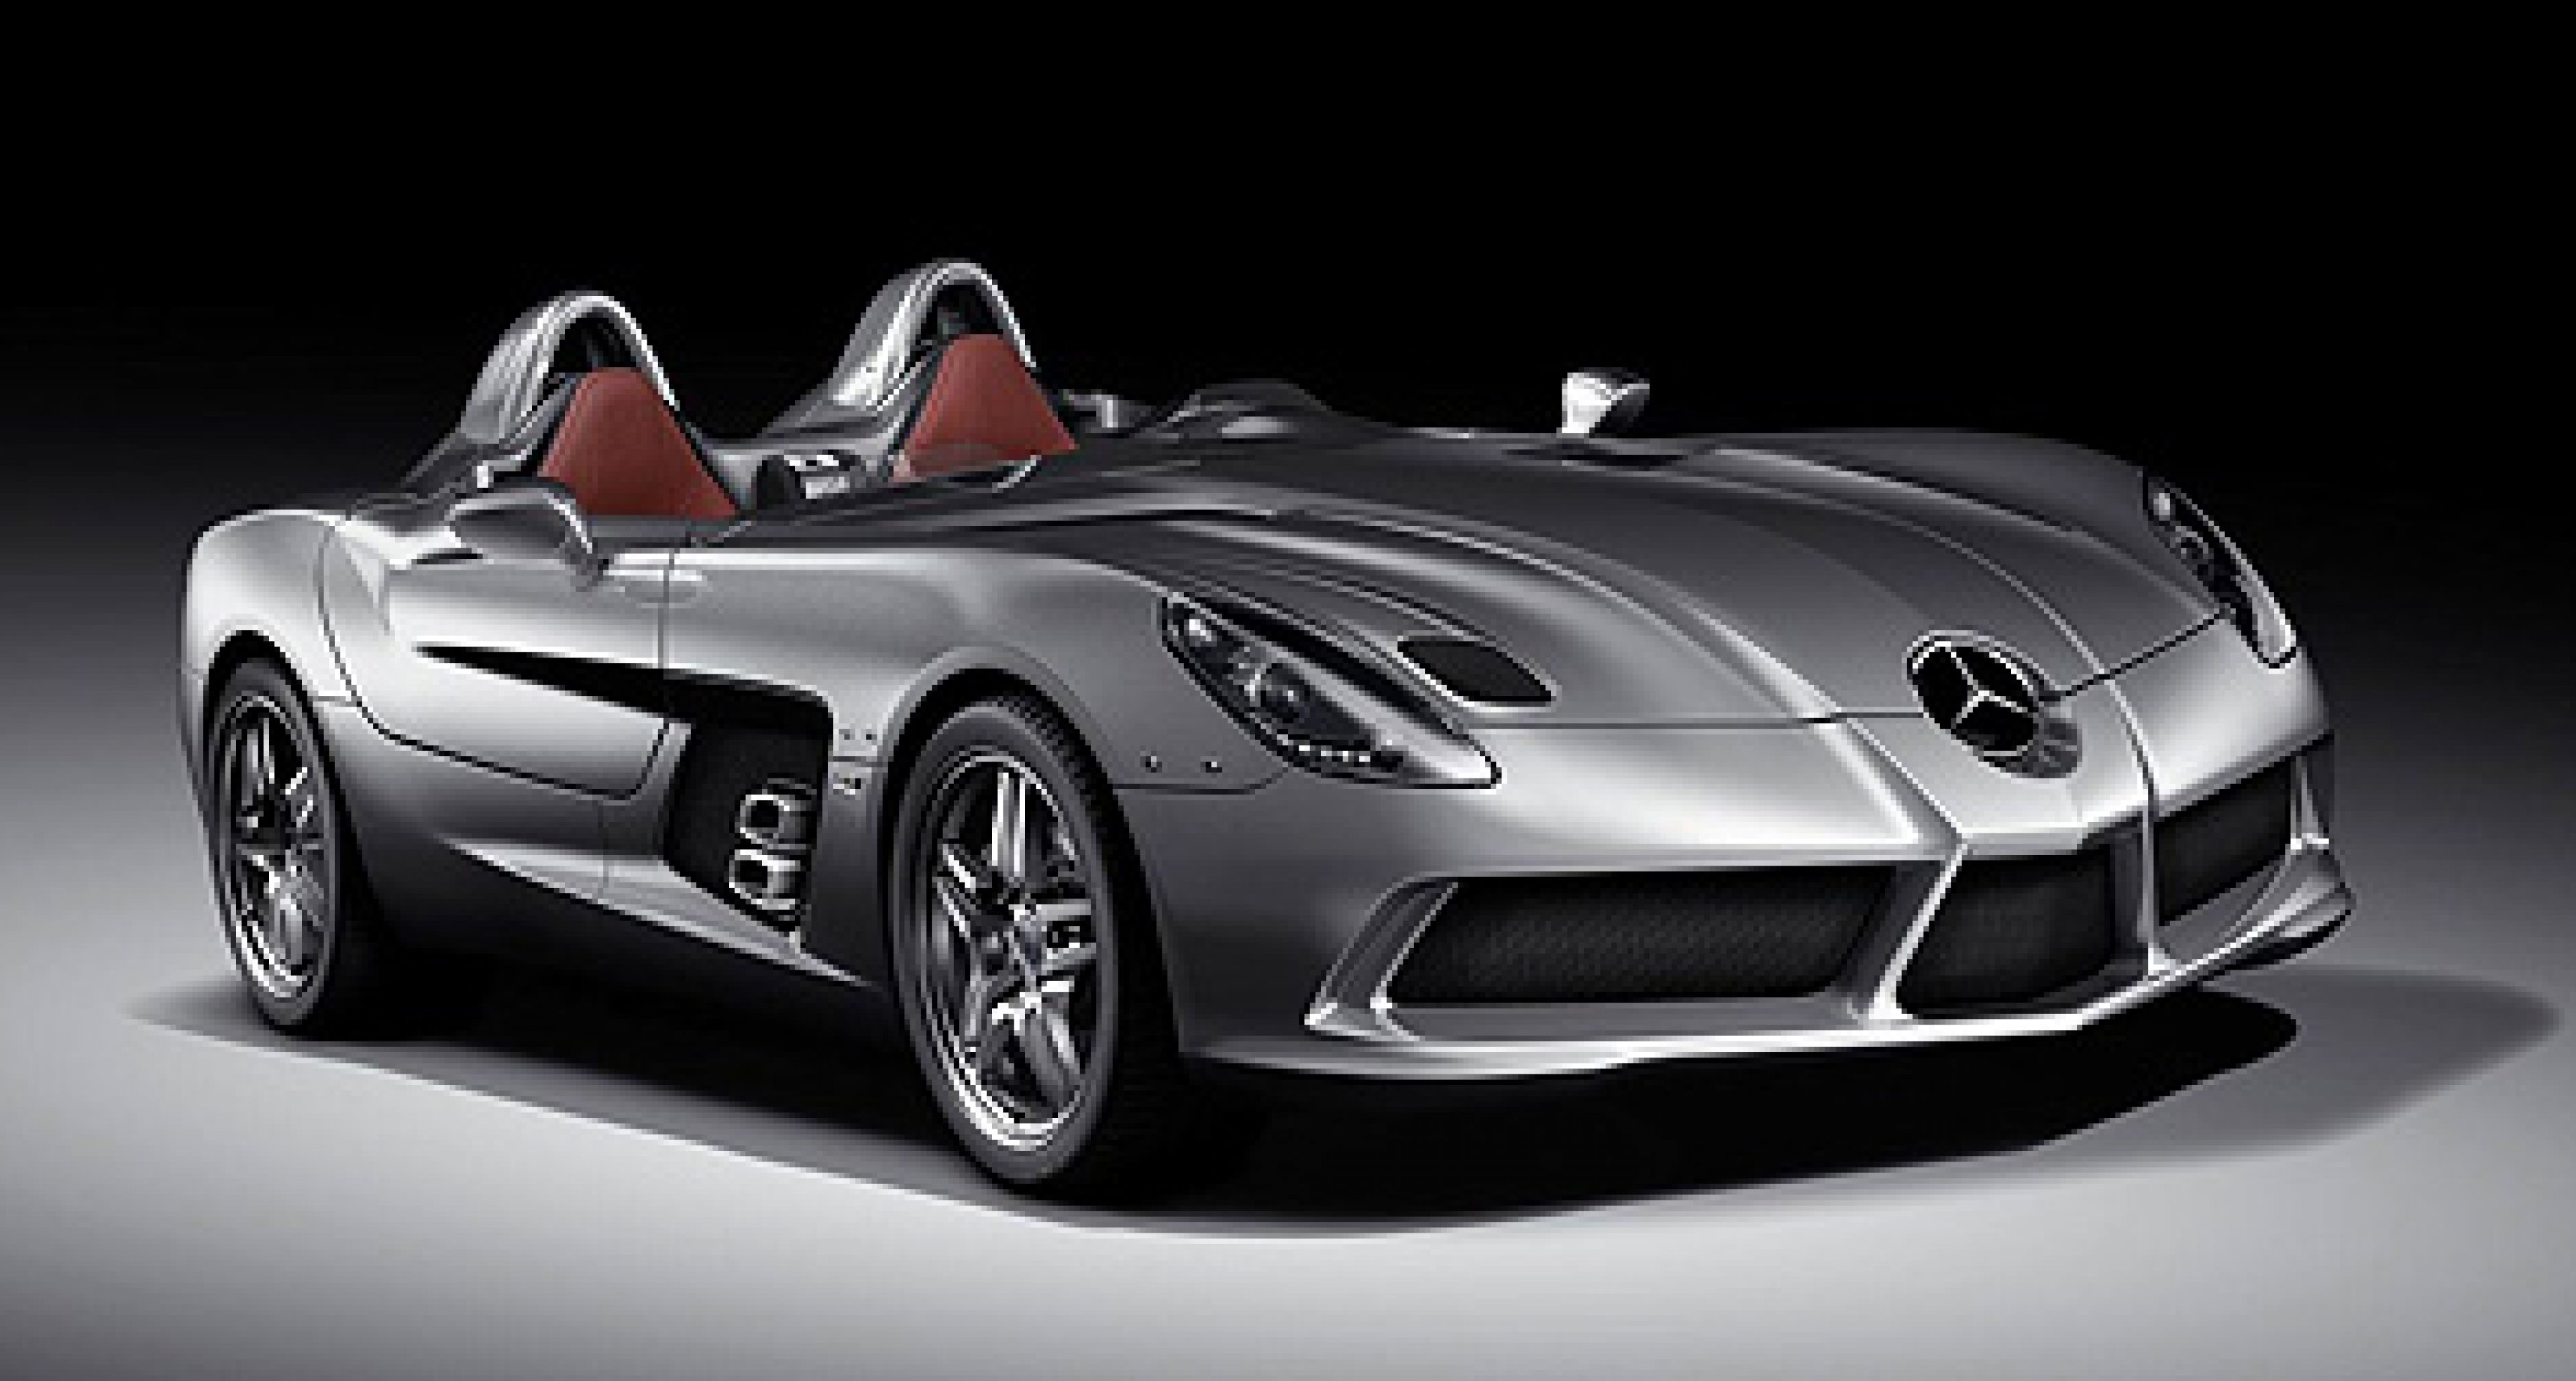 The Mercedes-Benz SLR Stirling Moss